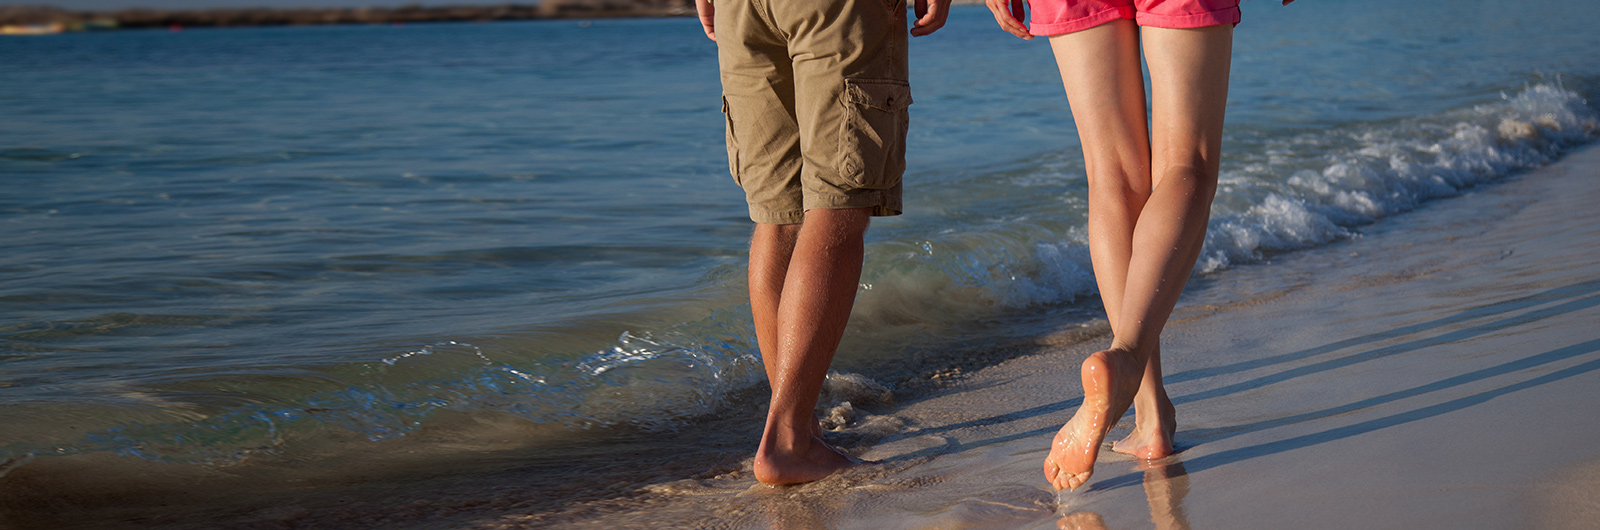 Couple walking on the beach, living a healthier life after varicose vein treatment